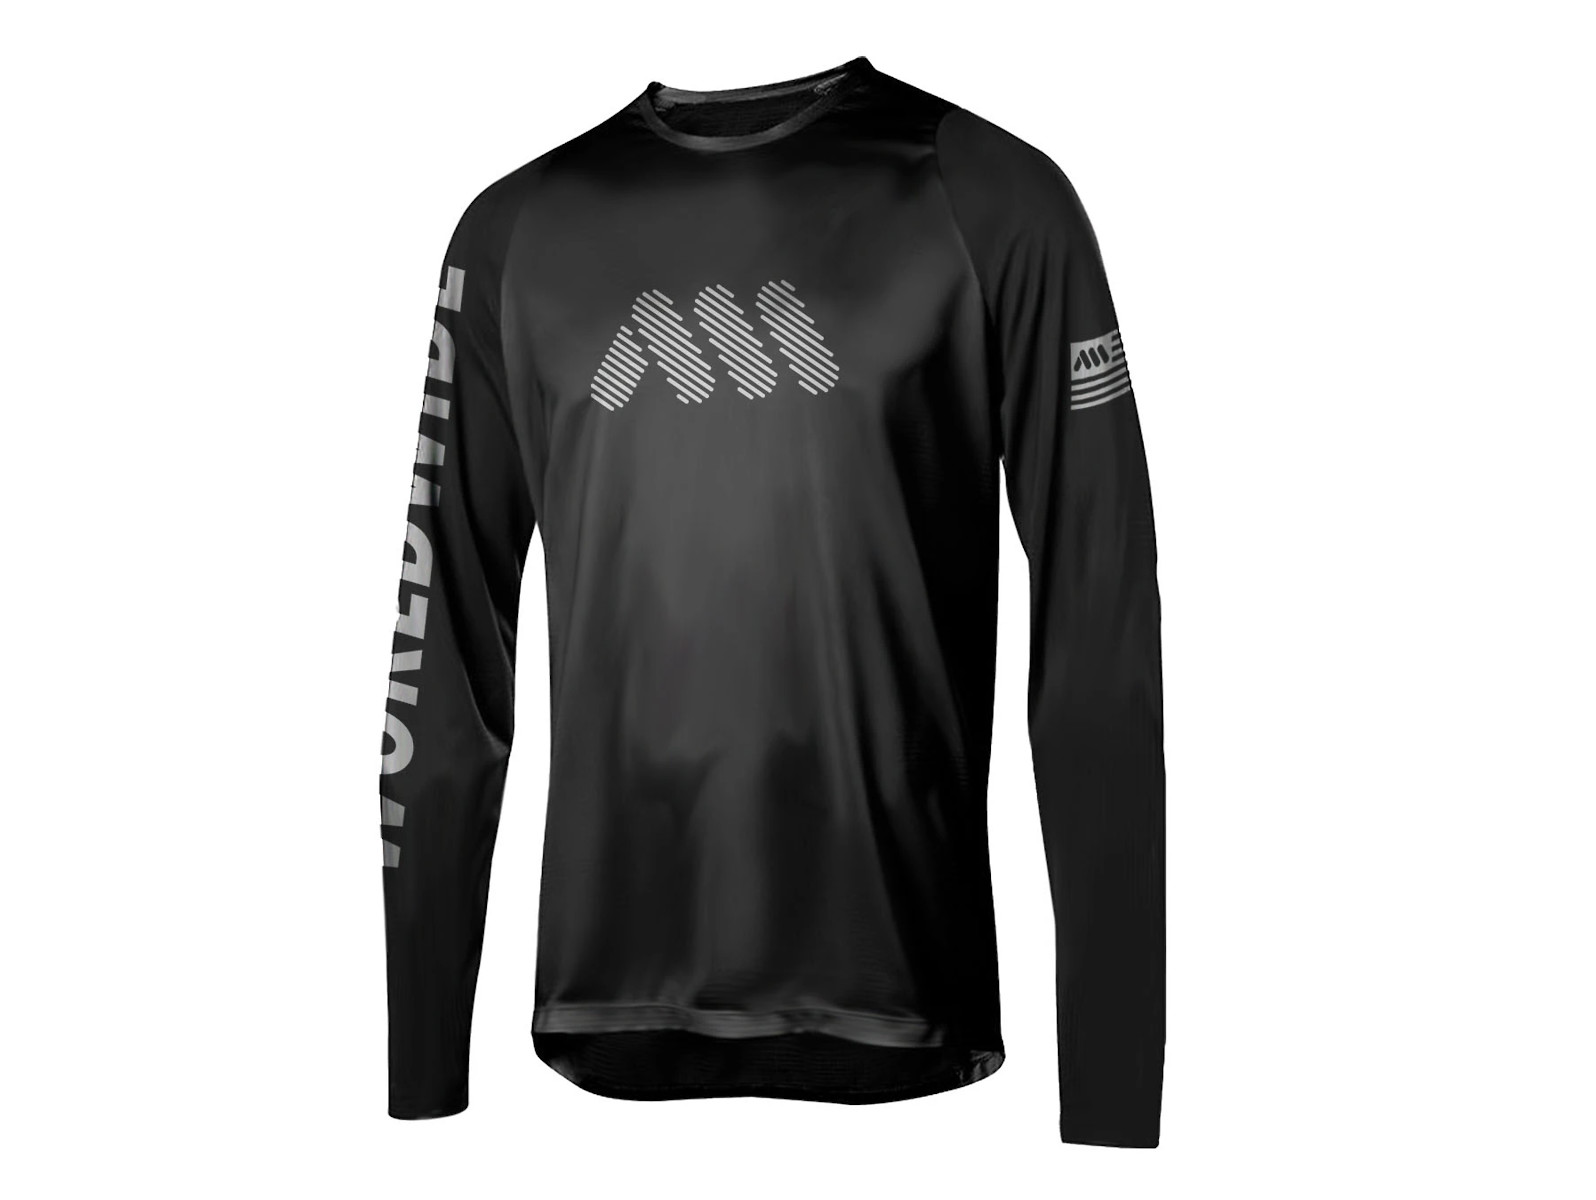 All Mountain Style Merica Riding Jersey